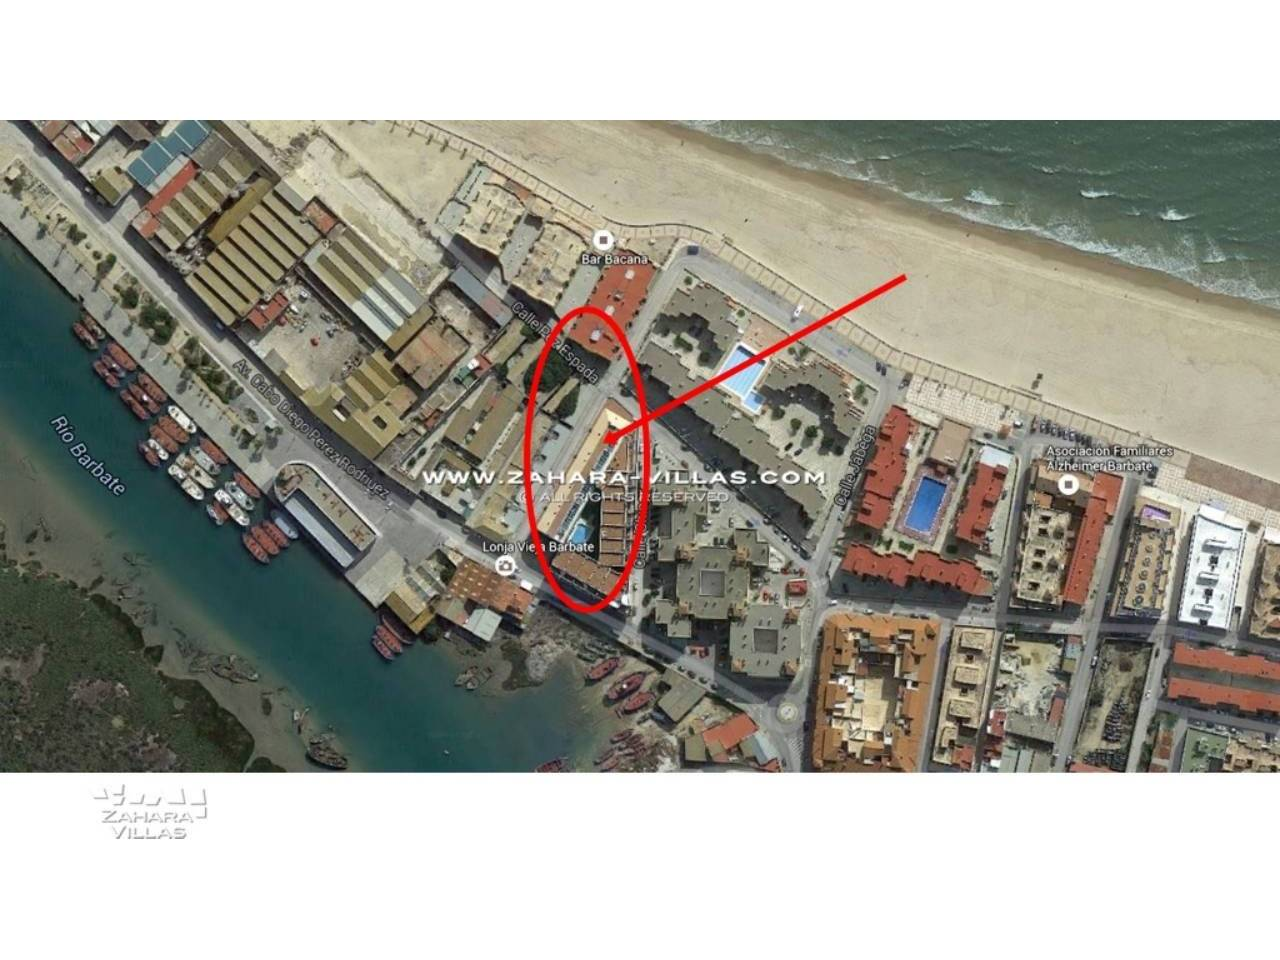 Imagen 13 de Apartment for sale 50 meters from the beach